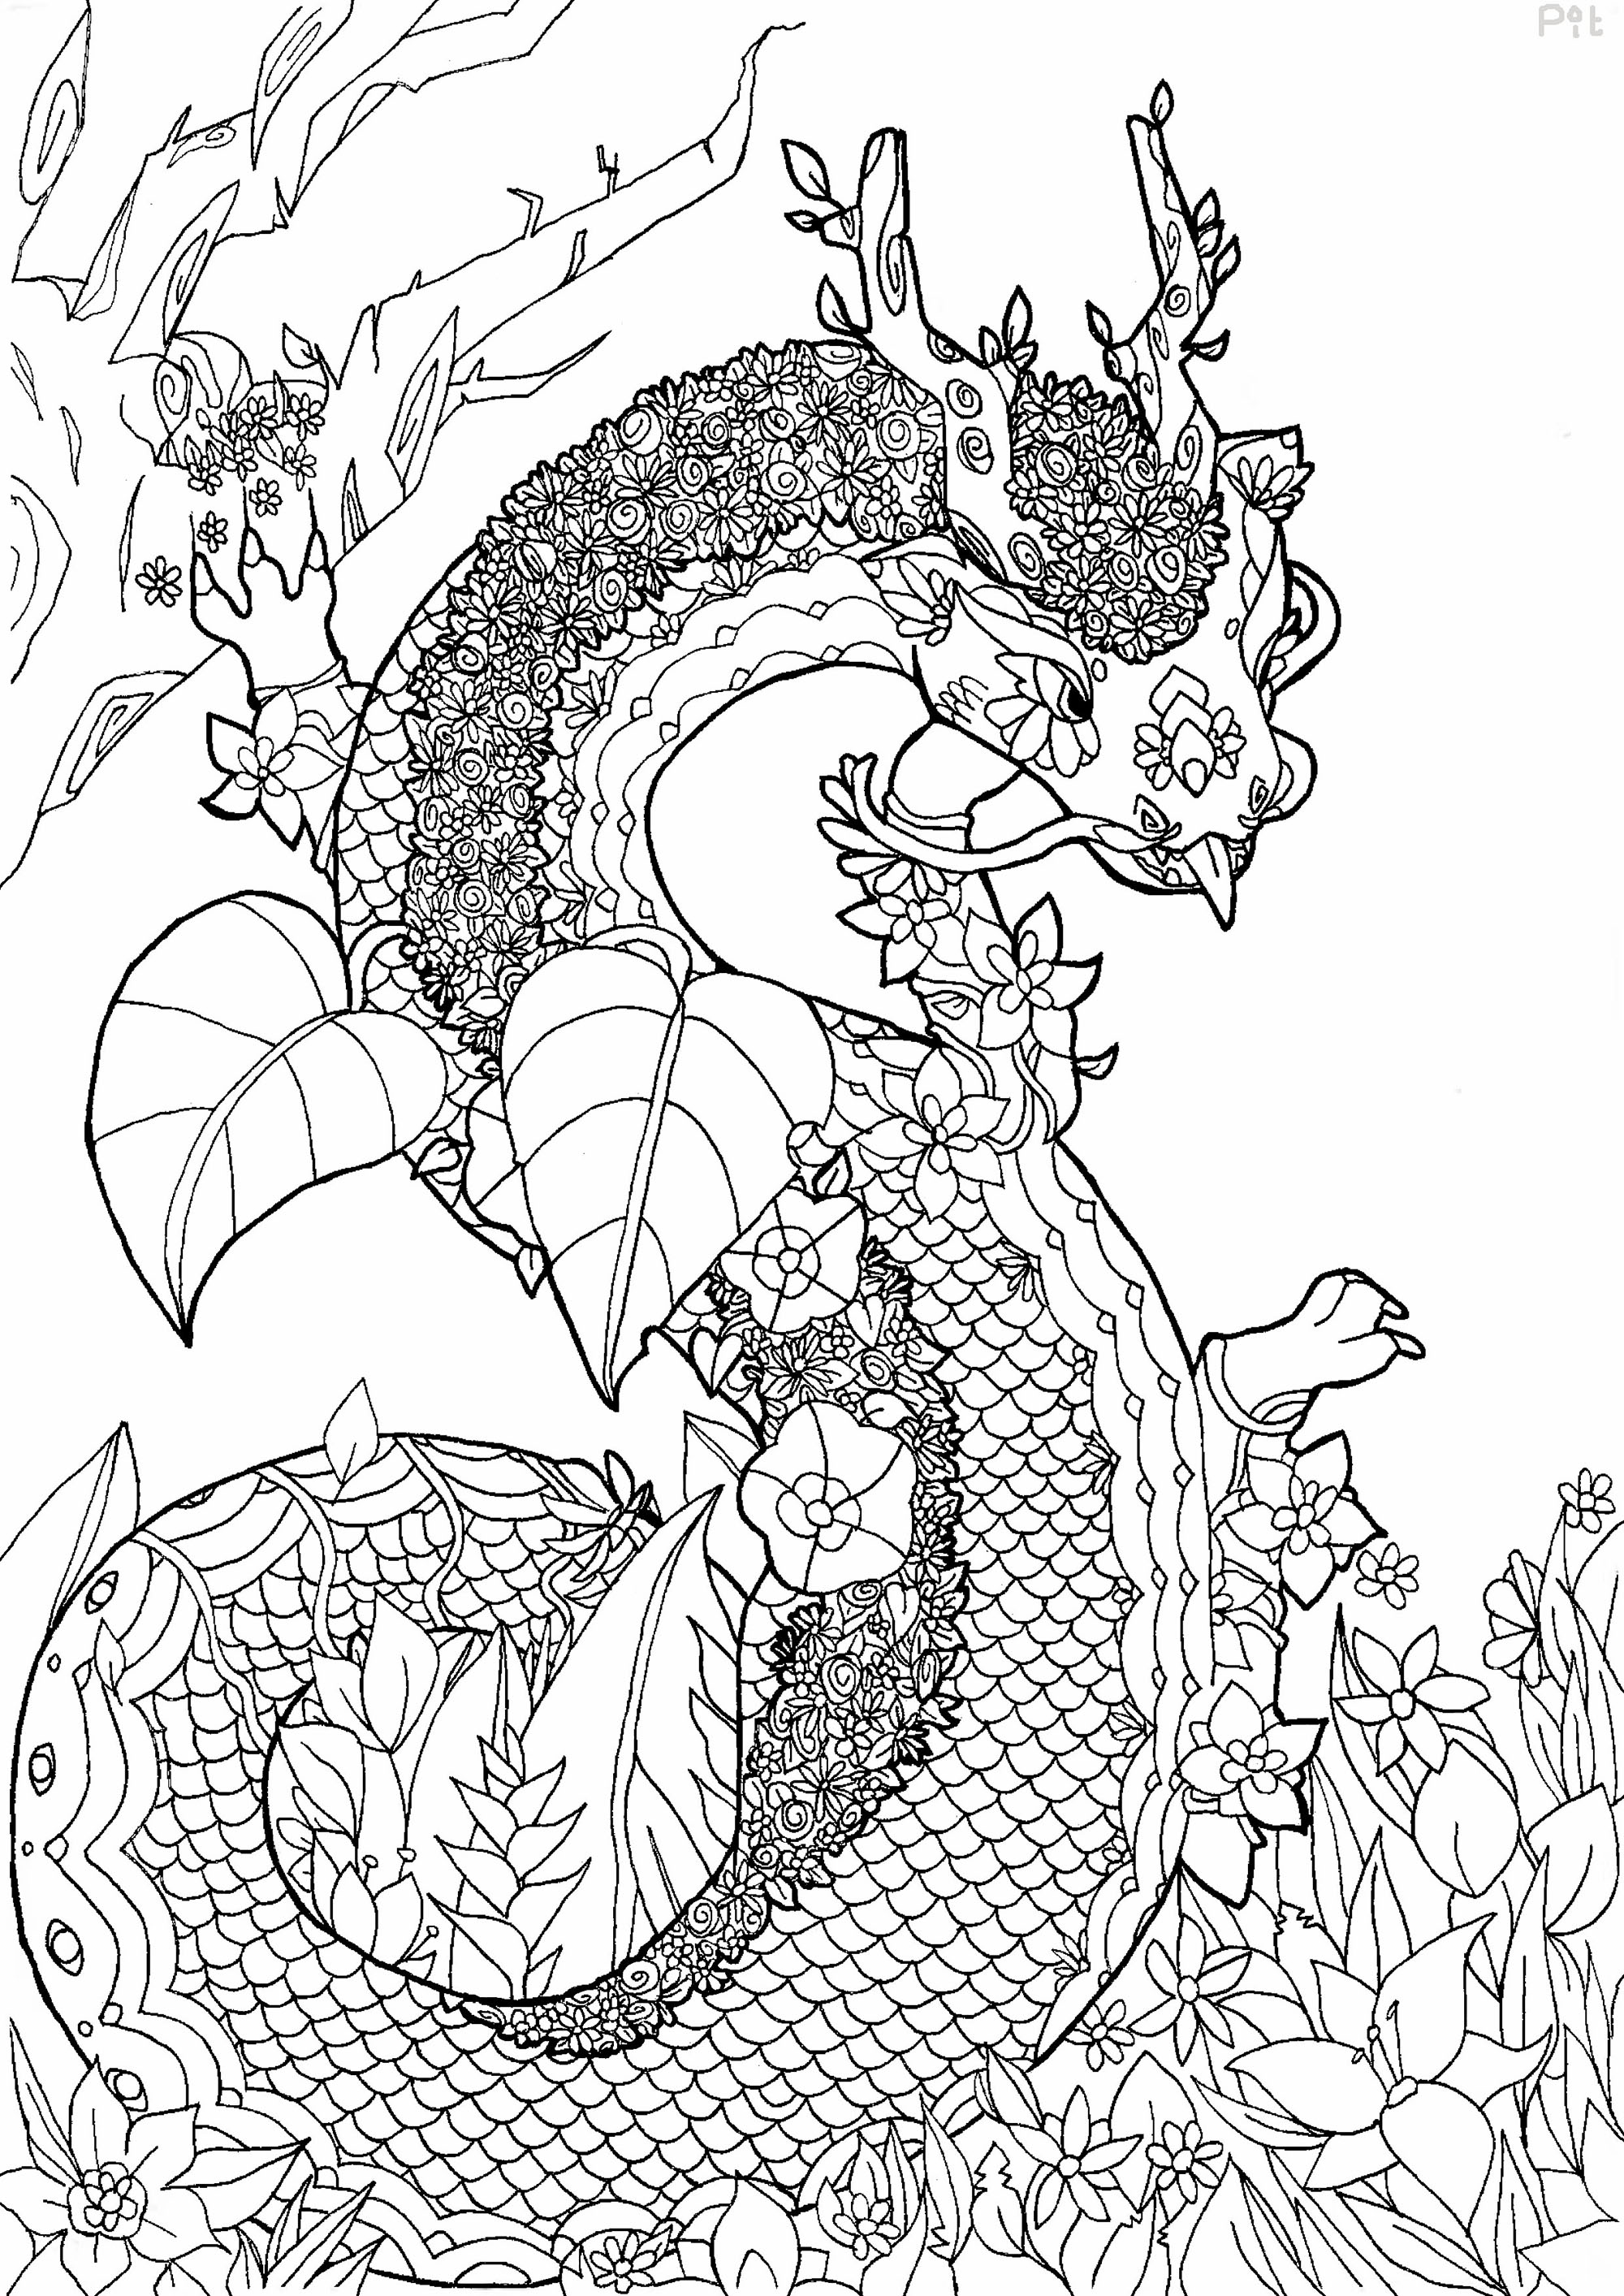 Flowers and vegetation - Coloring pages for adults